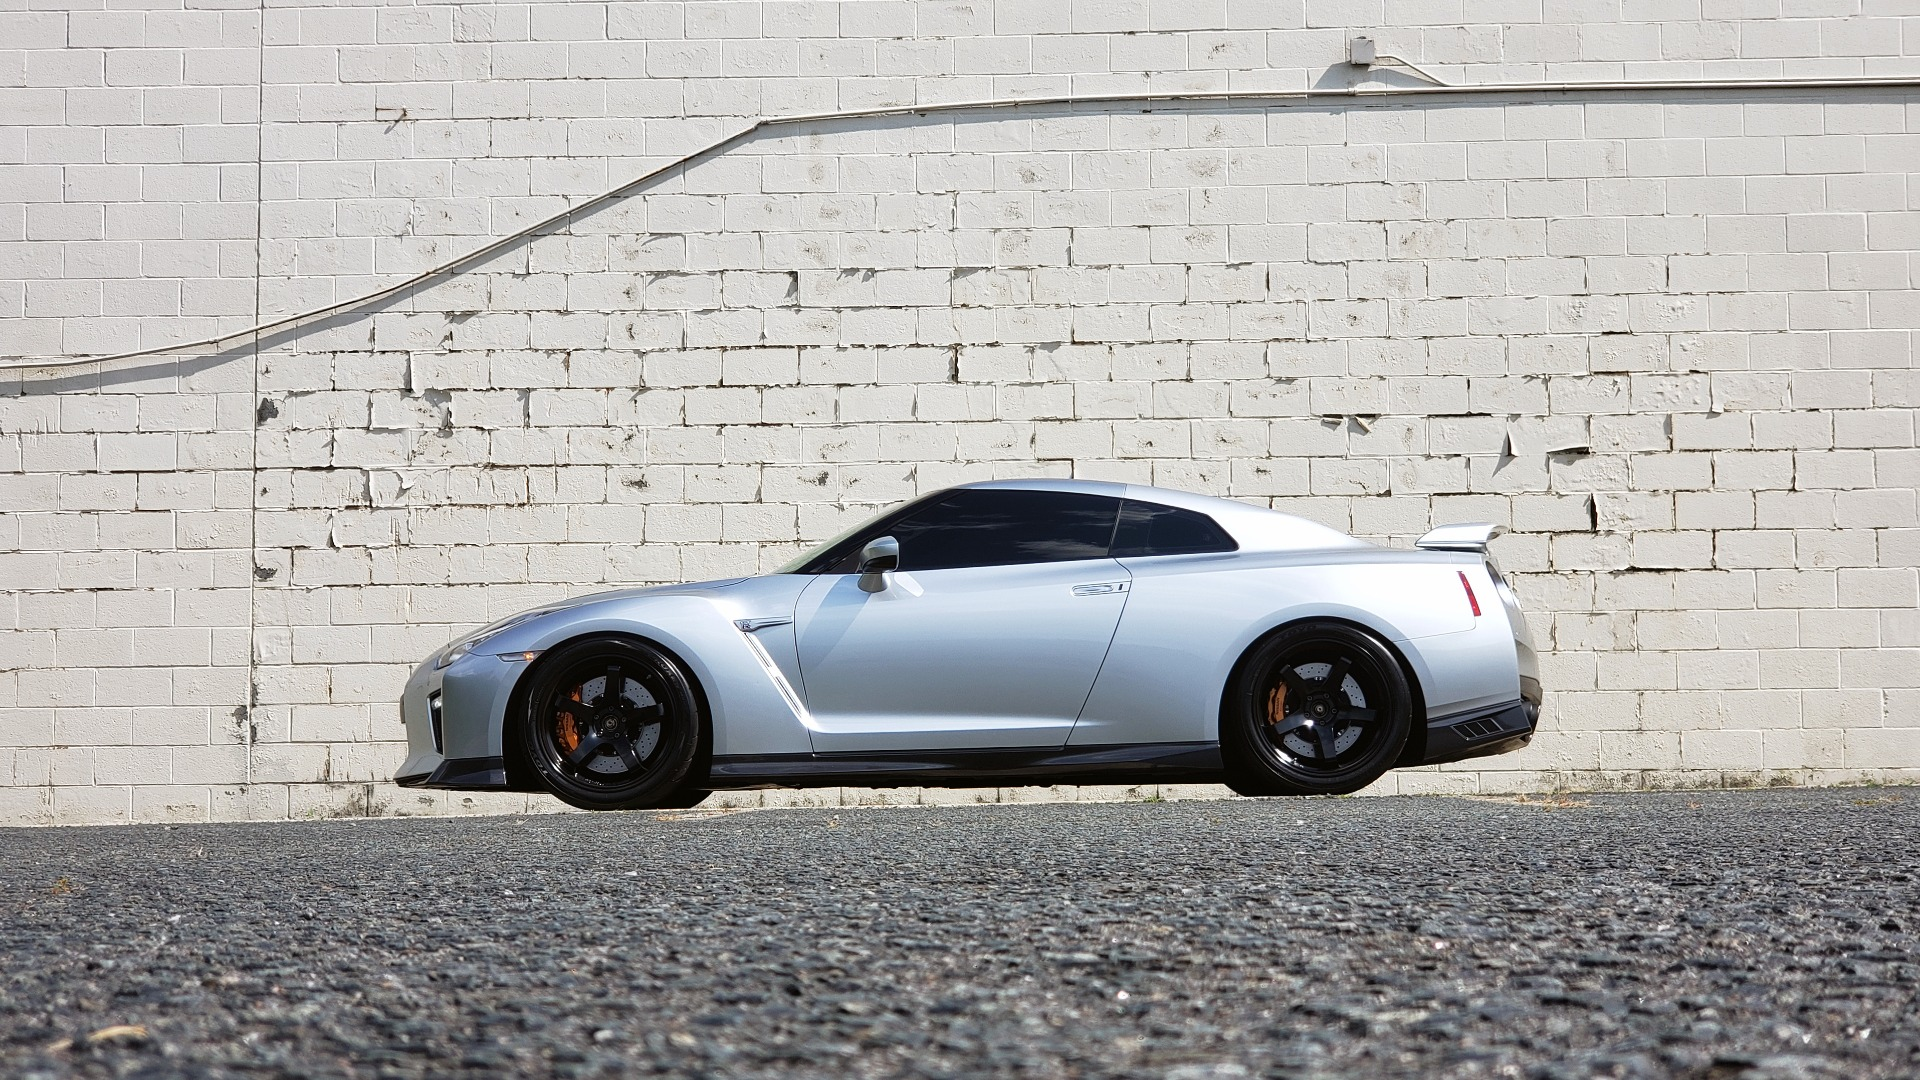 Used 2018 Nissan GT-R PREMIUM / NAV / BOSE / REARVIEW / CUSTOM WHEELS / COIL OVER SHOCKS / TUNED for sale Sold at Formula Imports in Charlotte NC 28227 83